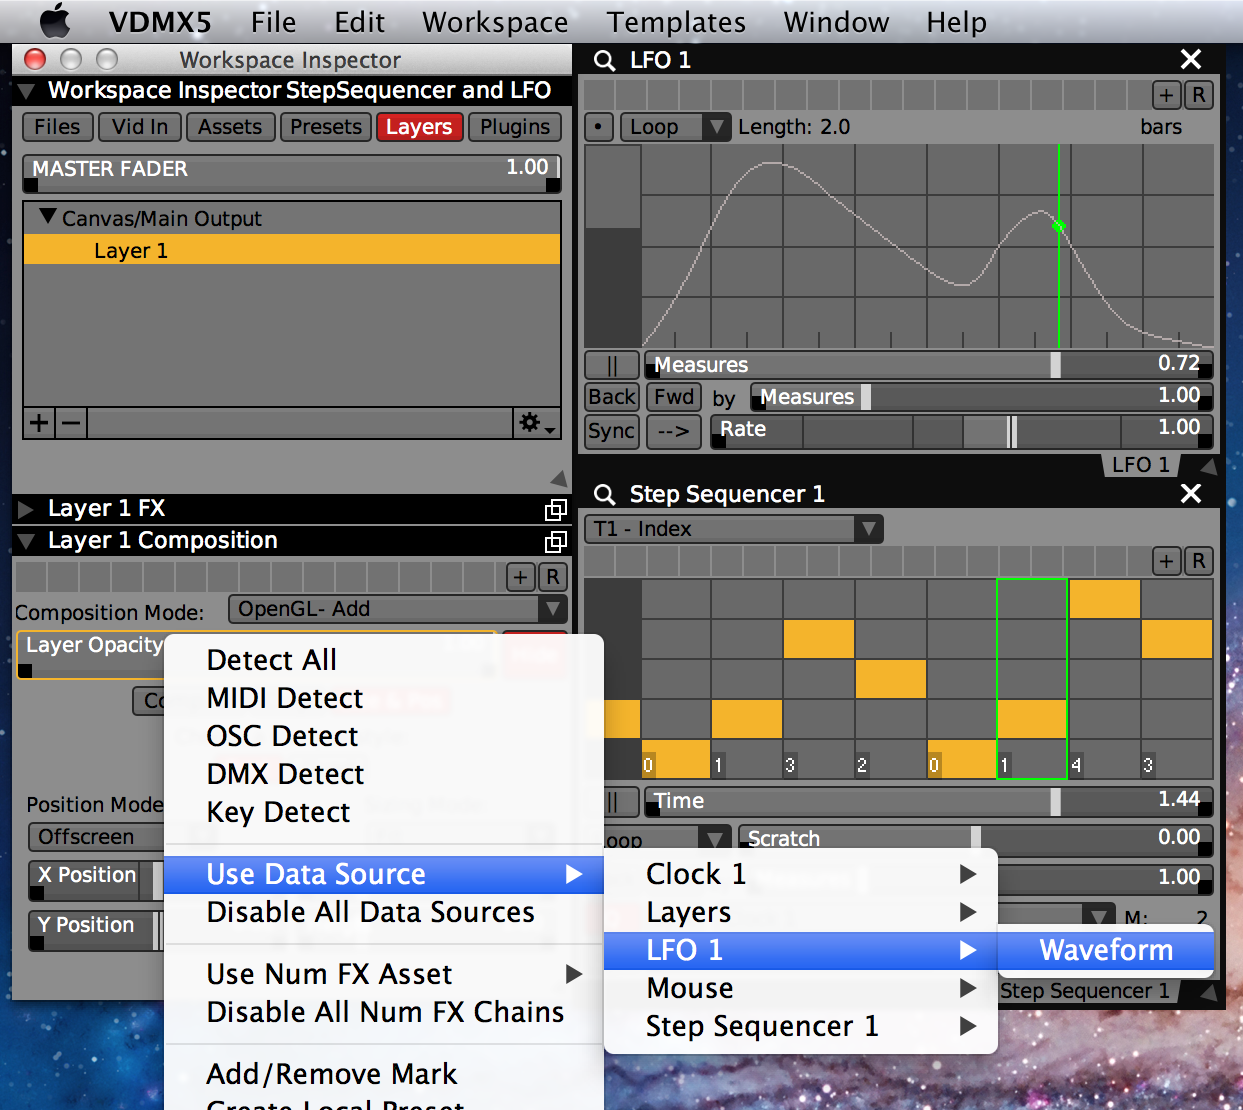 Values generated by the LFO and Step Sequencer plugins are available as data-sources for sliders and other UI items.